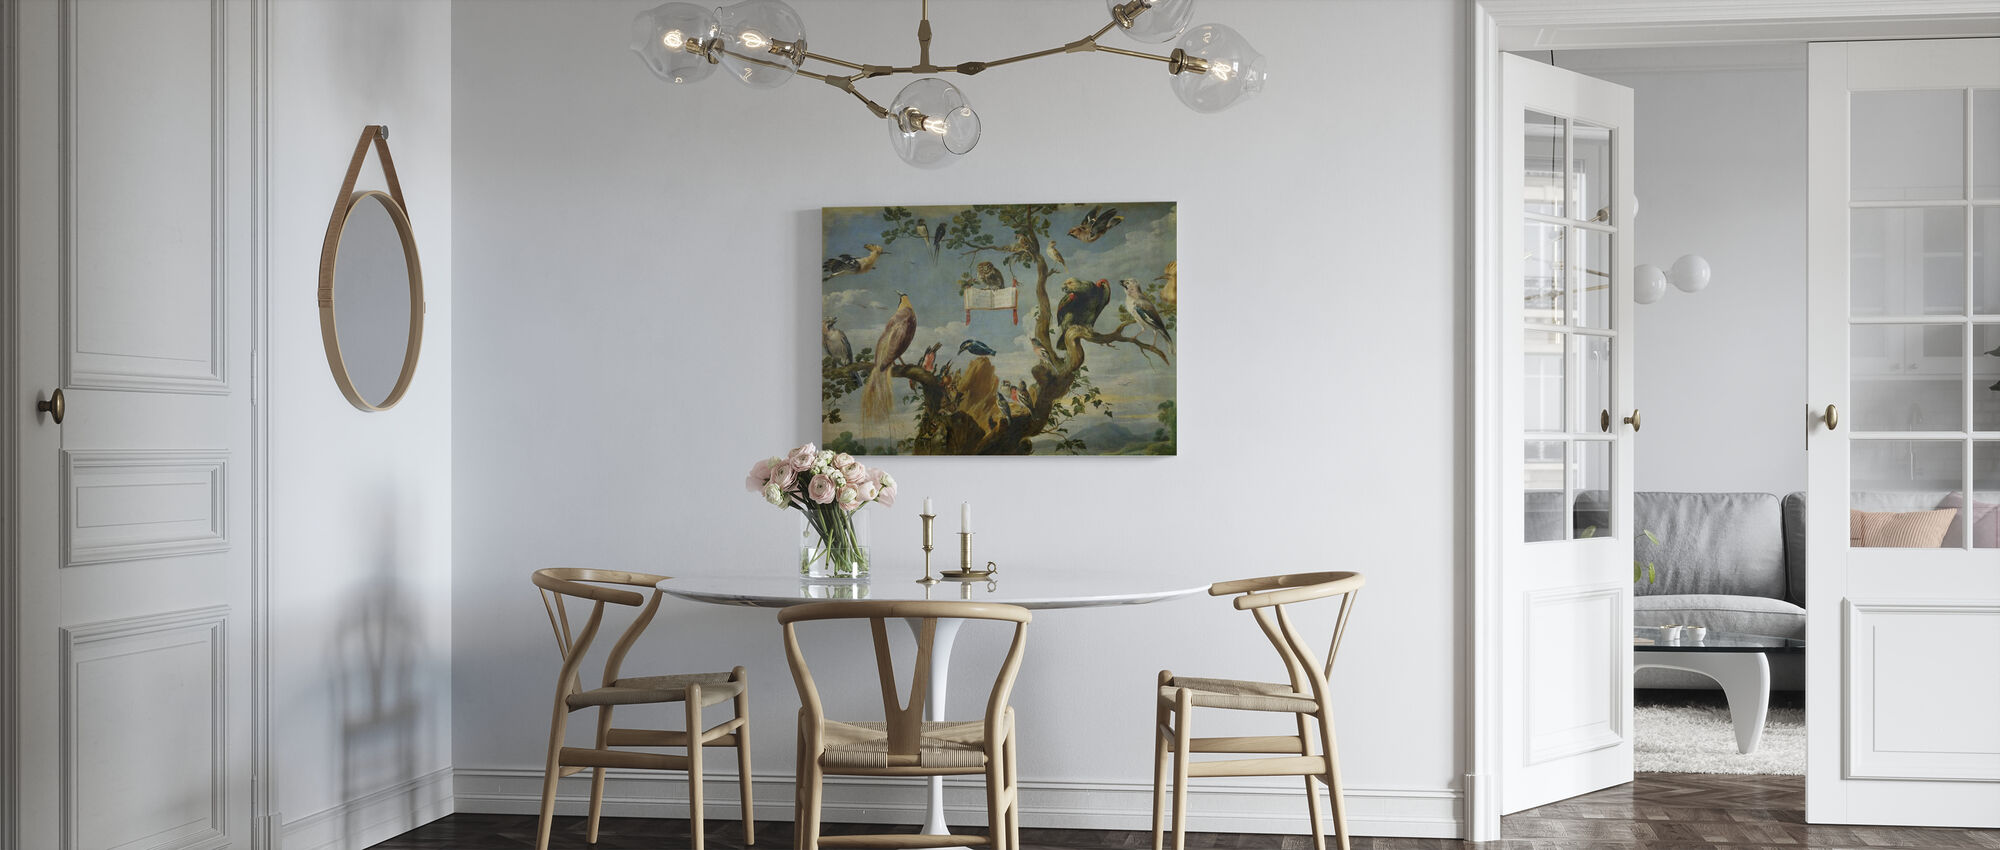 Concert of the Birds - Frans Snyders - Canvas print - Kitchen